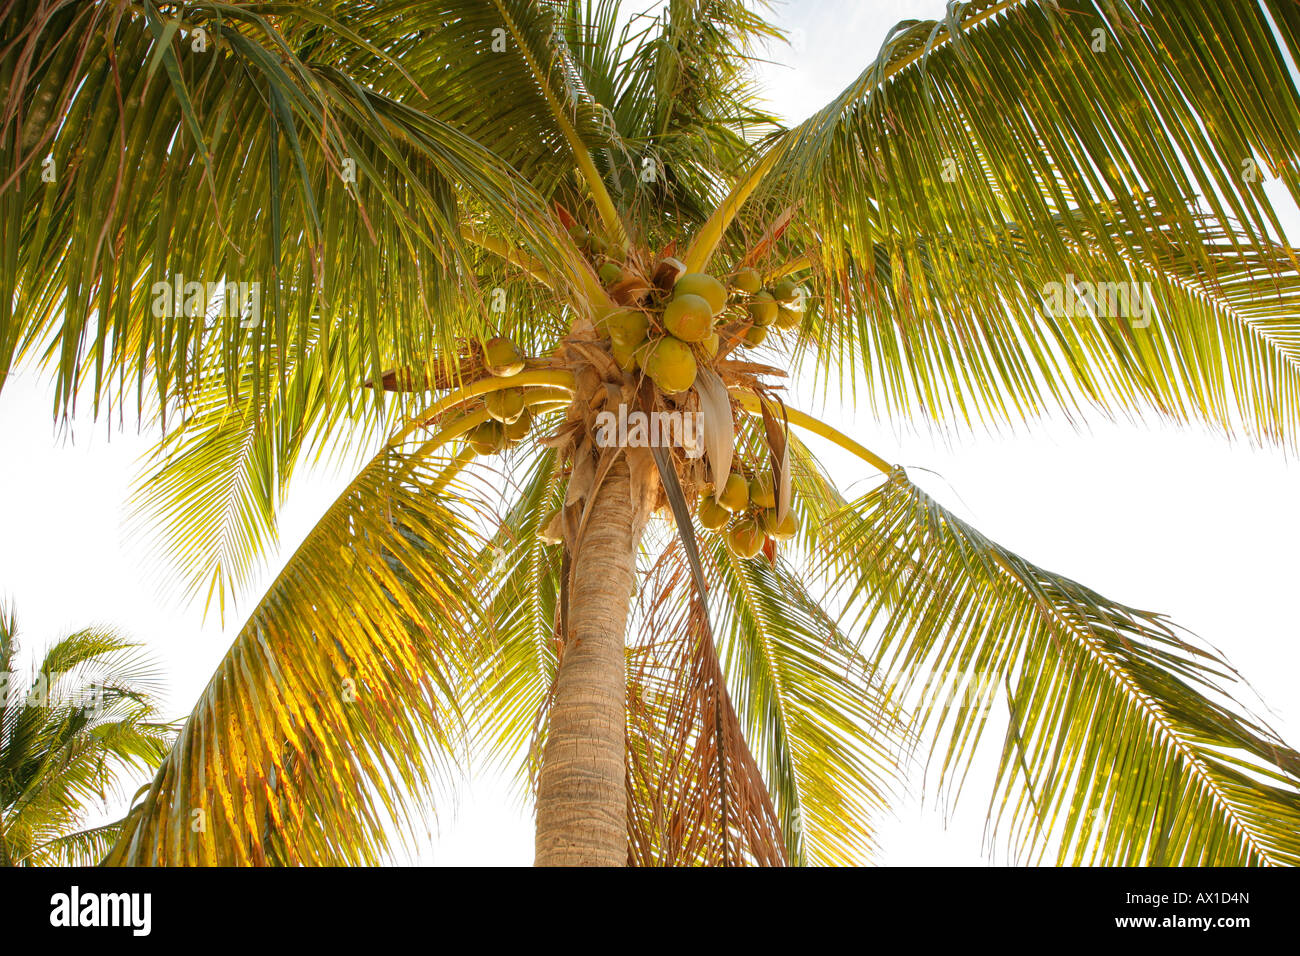 Coconut palm, tree, low angle view, Isla Mujeres, Cancun, Mexico - Stock Image